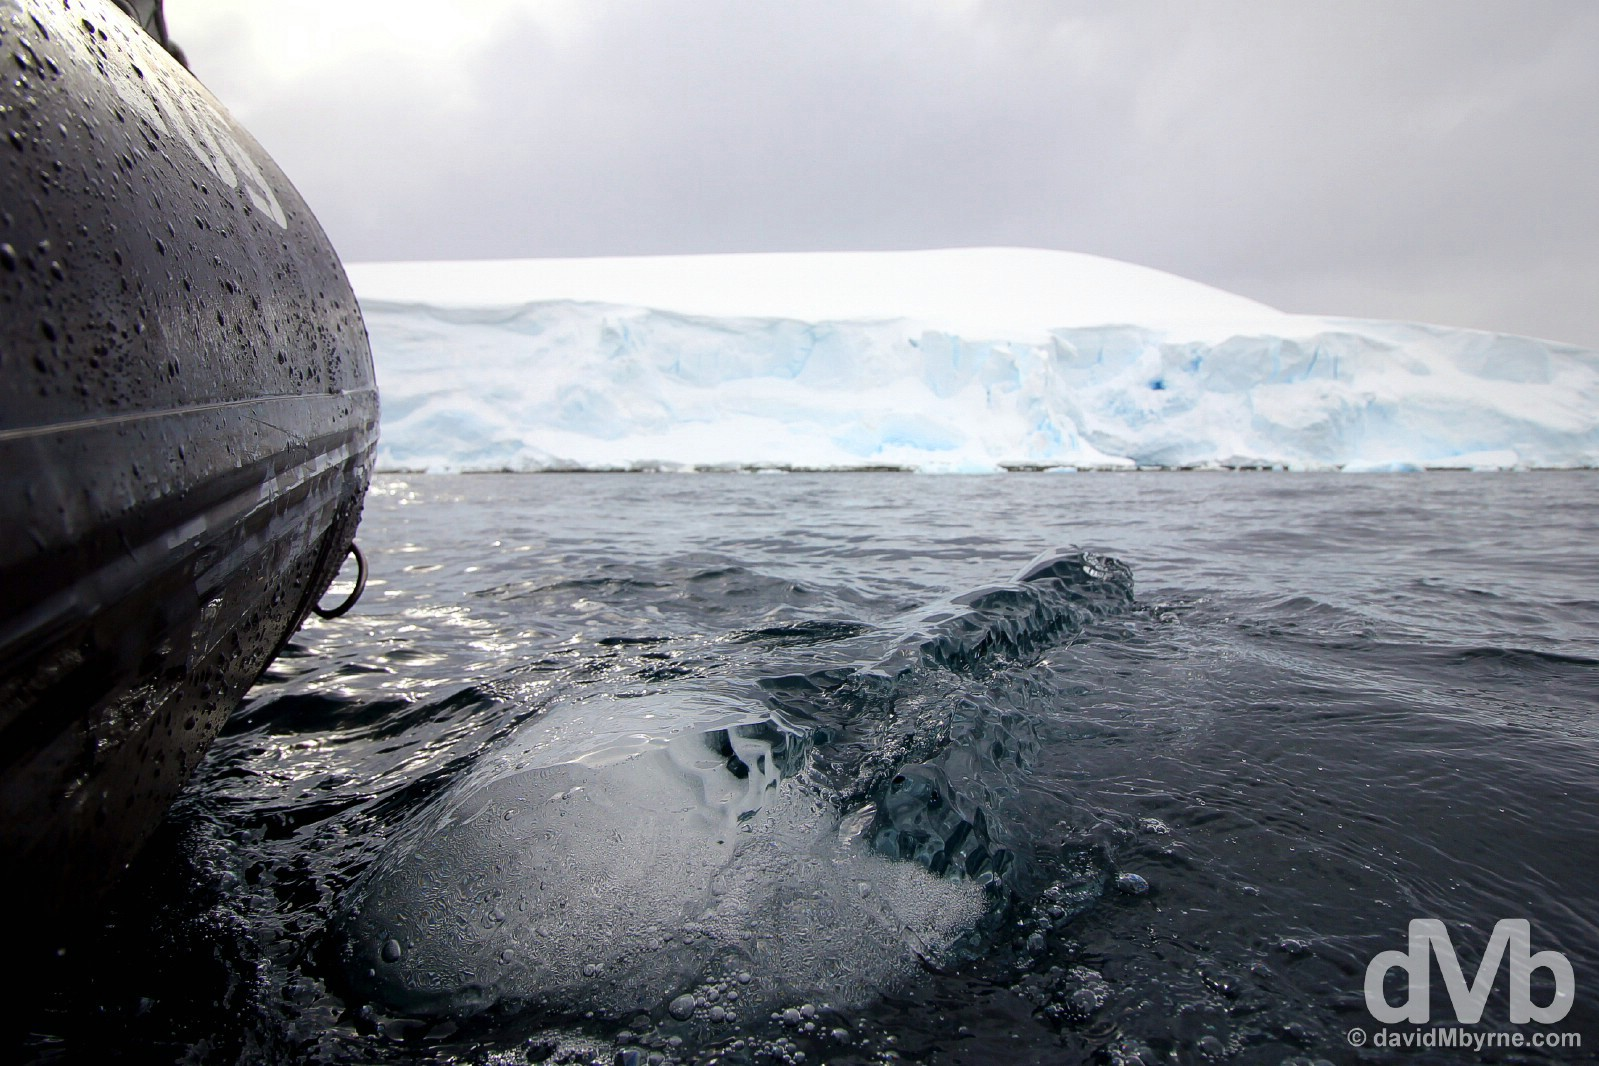 A growler in the waters off Danco Island, Antarctic Peninsula. November 30, 2015.